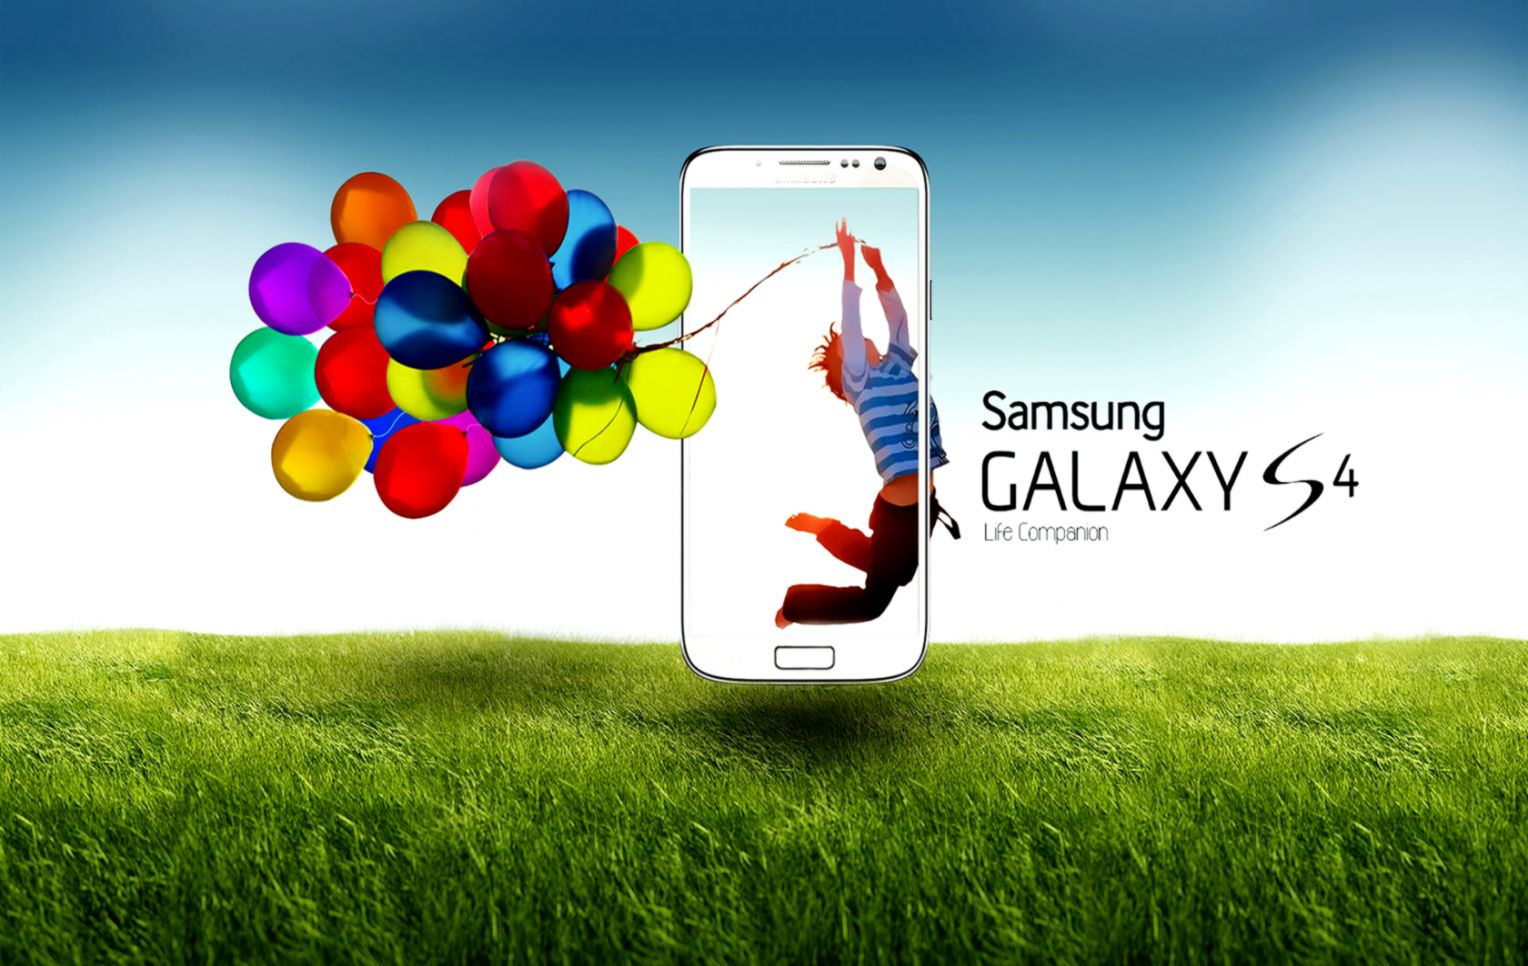 Samsung Galaxy S4 Hd Wallpaper Wallpapers Awards